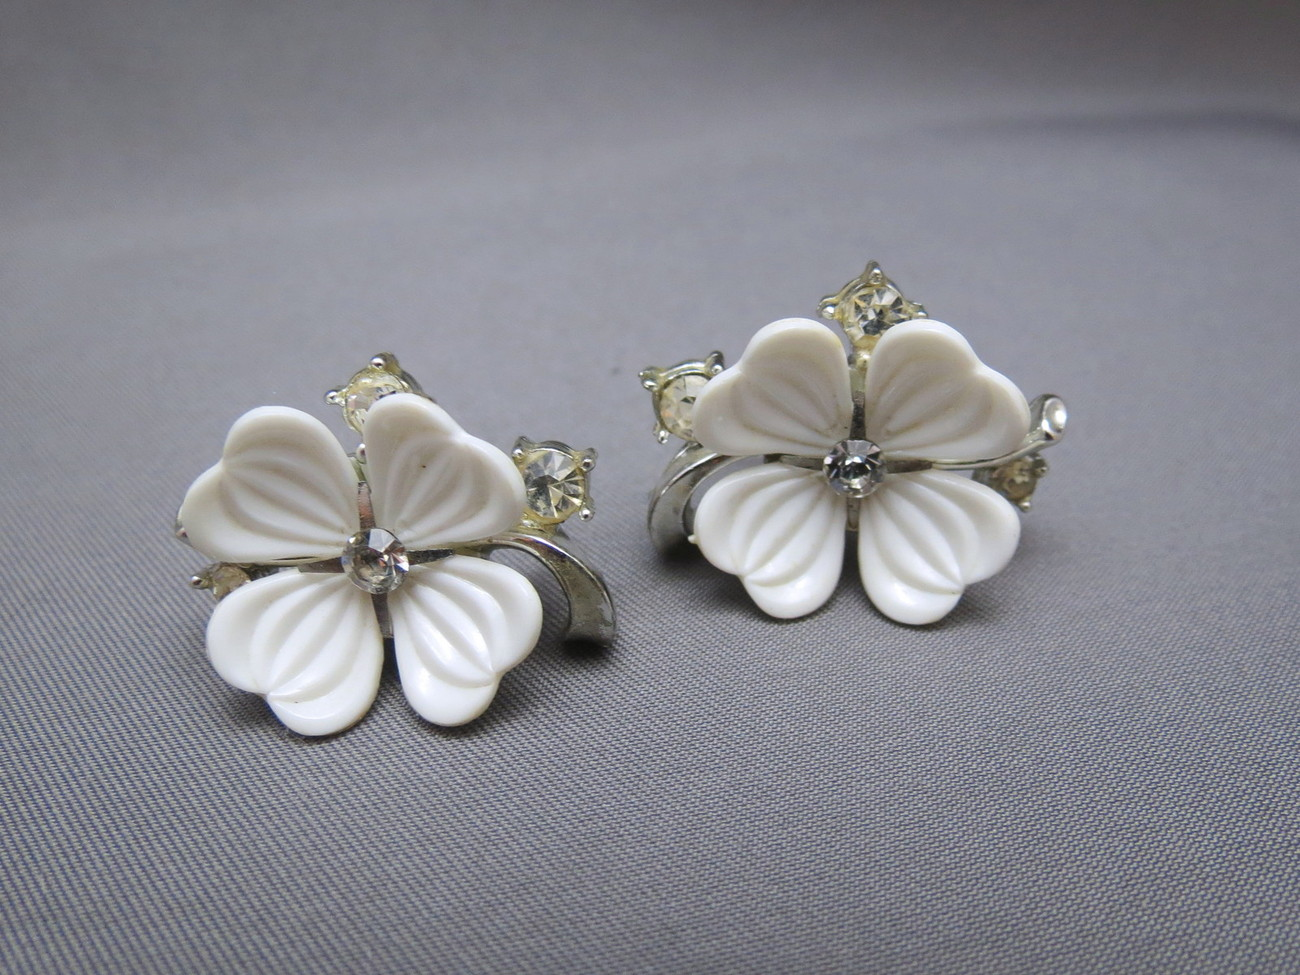 VTG 1960s Lisner Flower Earrings Early Plastic Petals Rhinestones Screw Backs